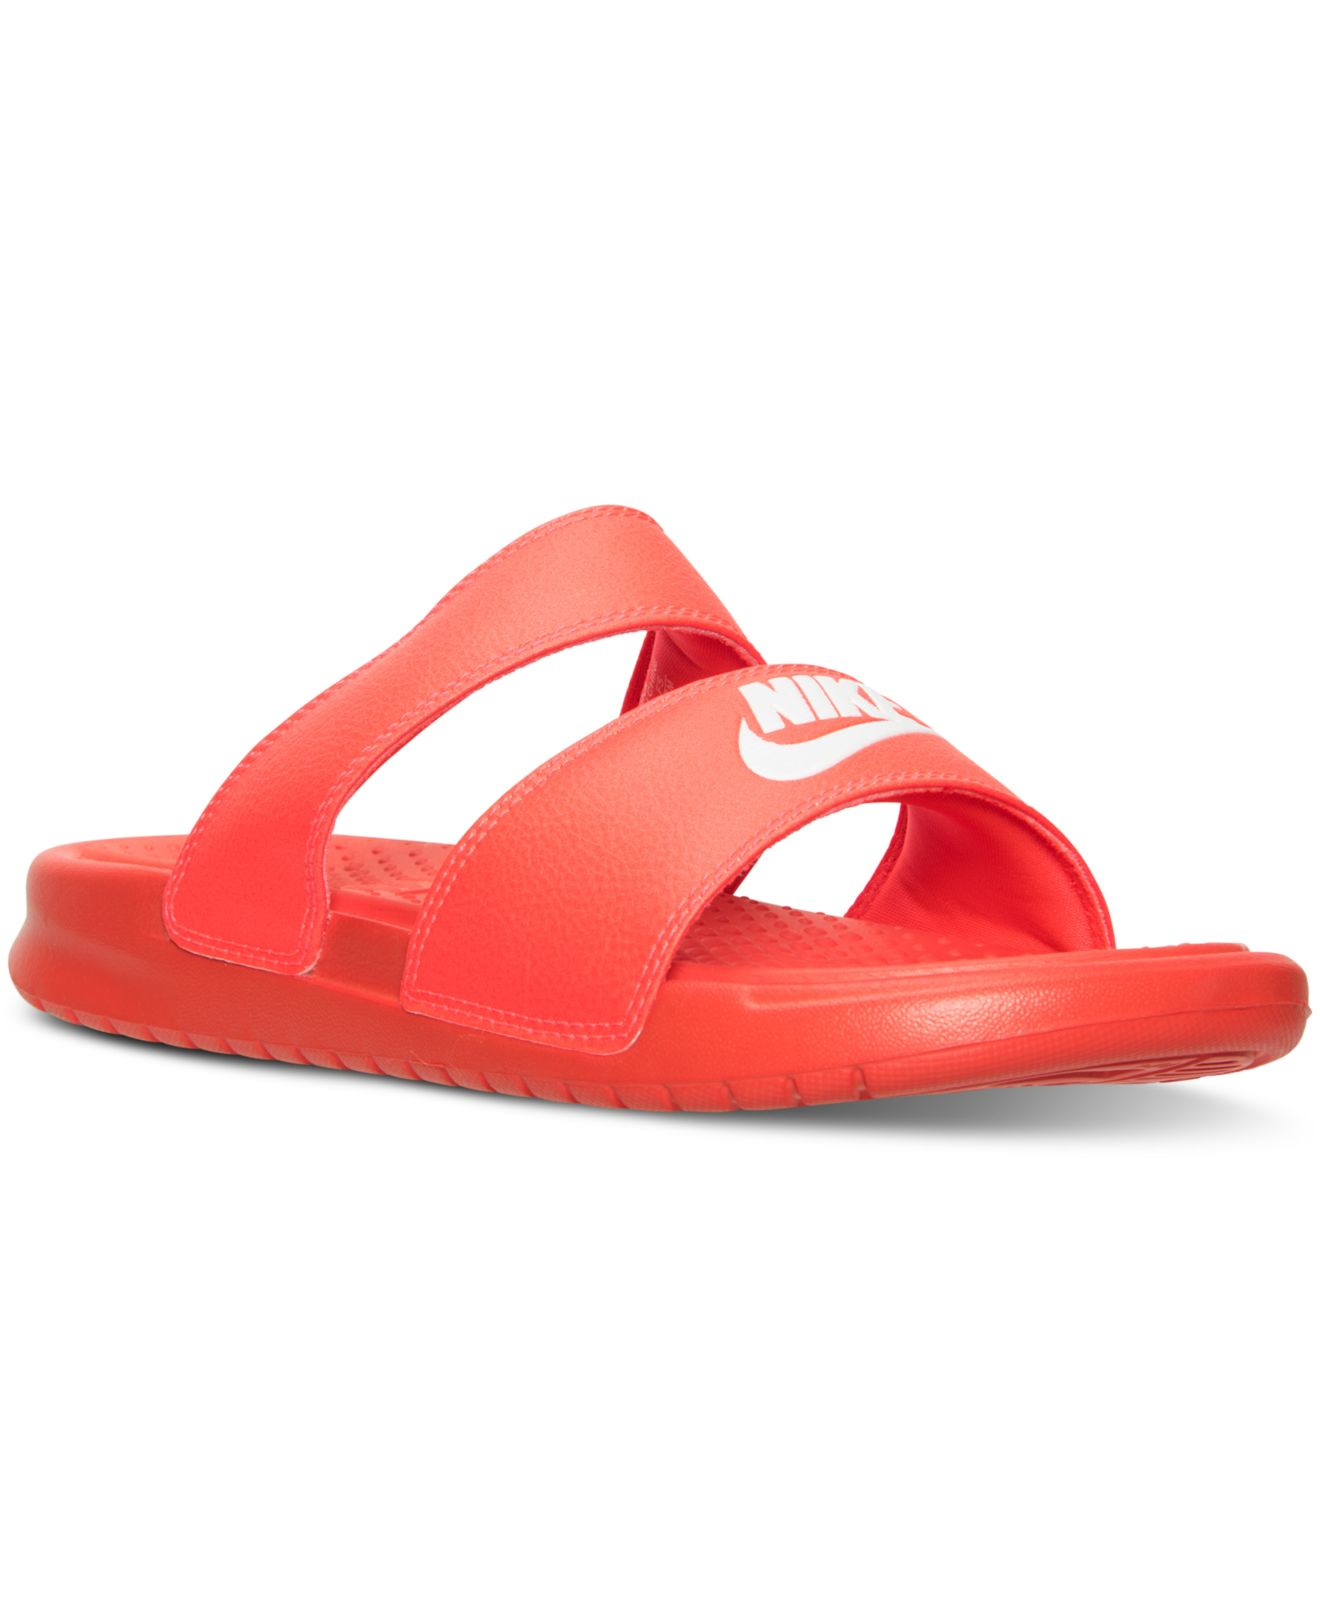 0e1699fdecbc closeout nike double strap sandals yv72q 9f6dc 5e0bd  hot lyst nike womens  benassi duo ultra slide sandals from finish line 5a59e 796b9